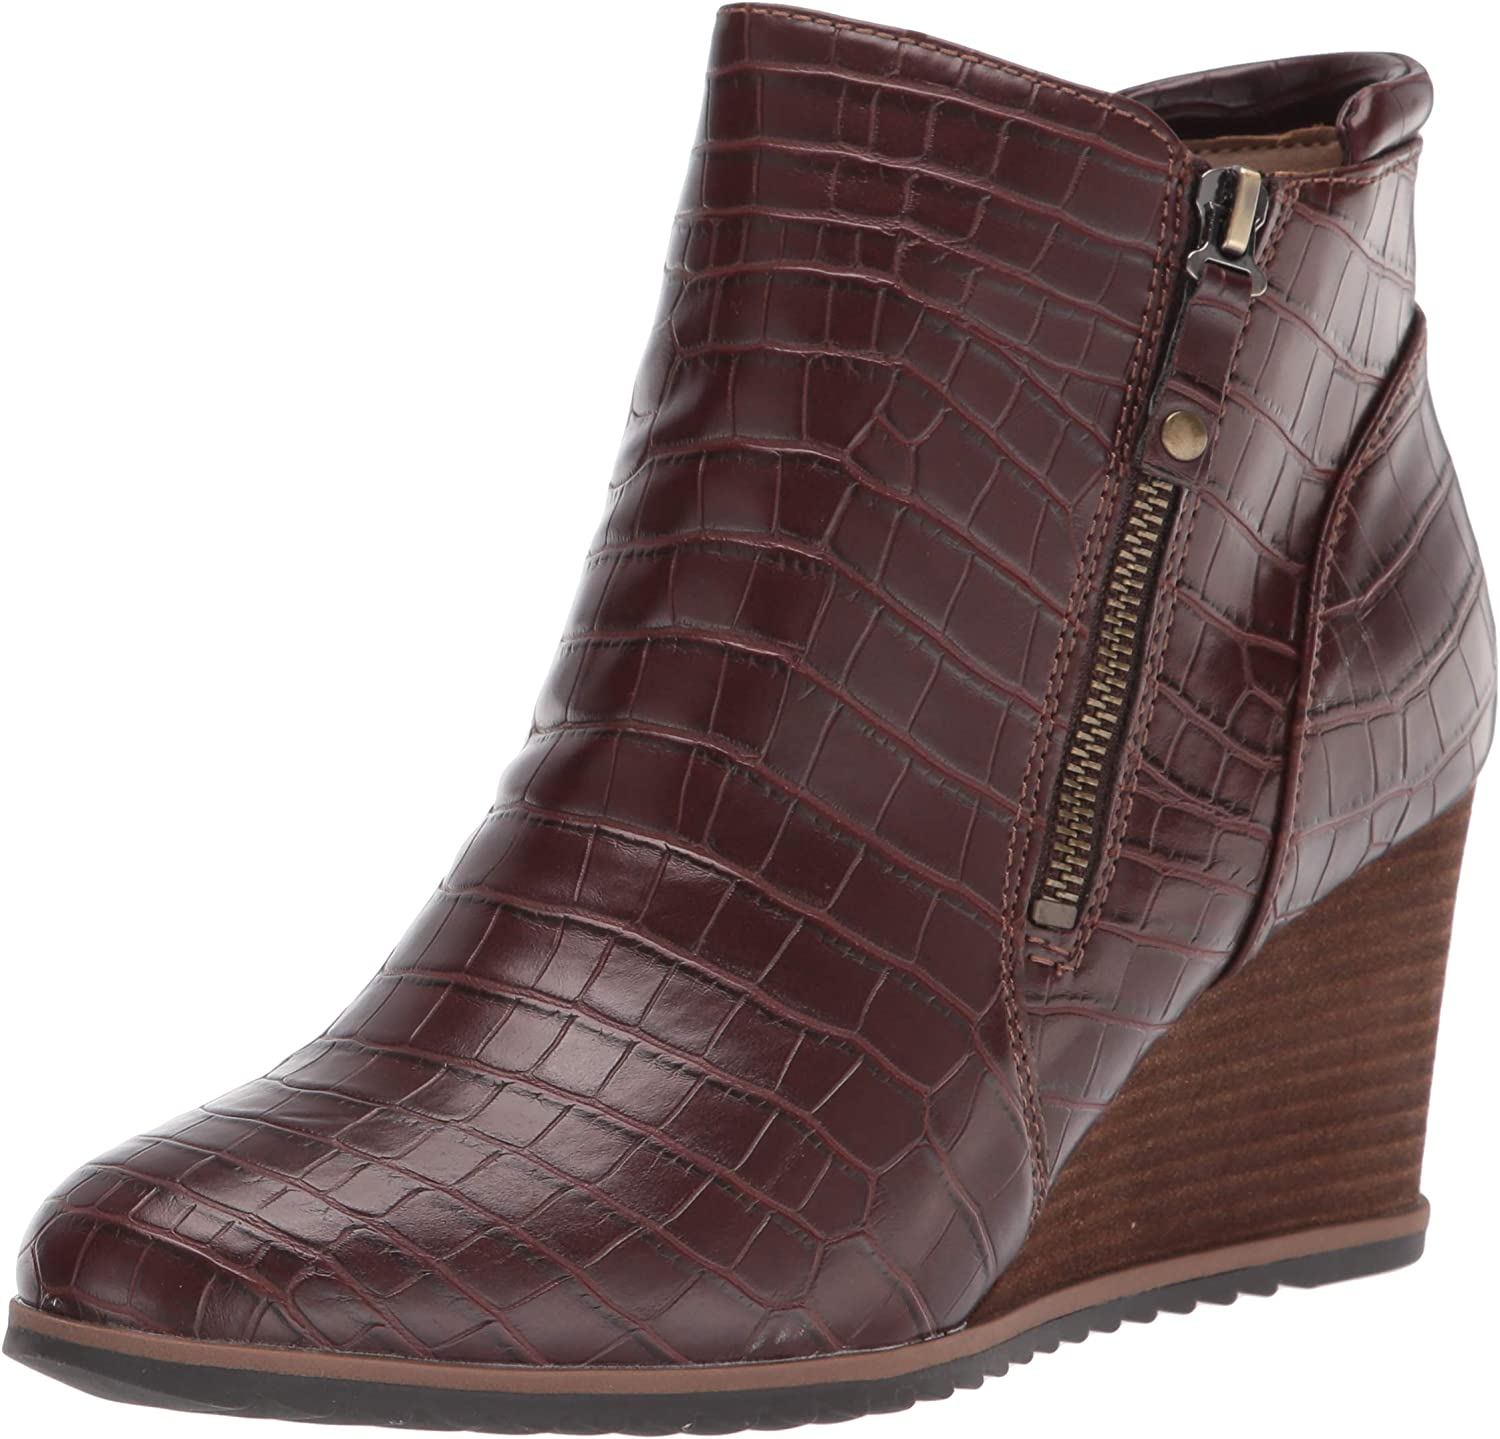 SOUL Naturalizer Women's Haley Booties Ankle Boot